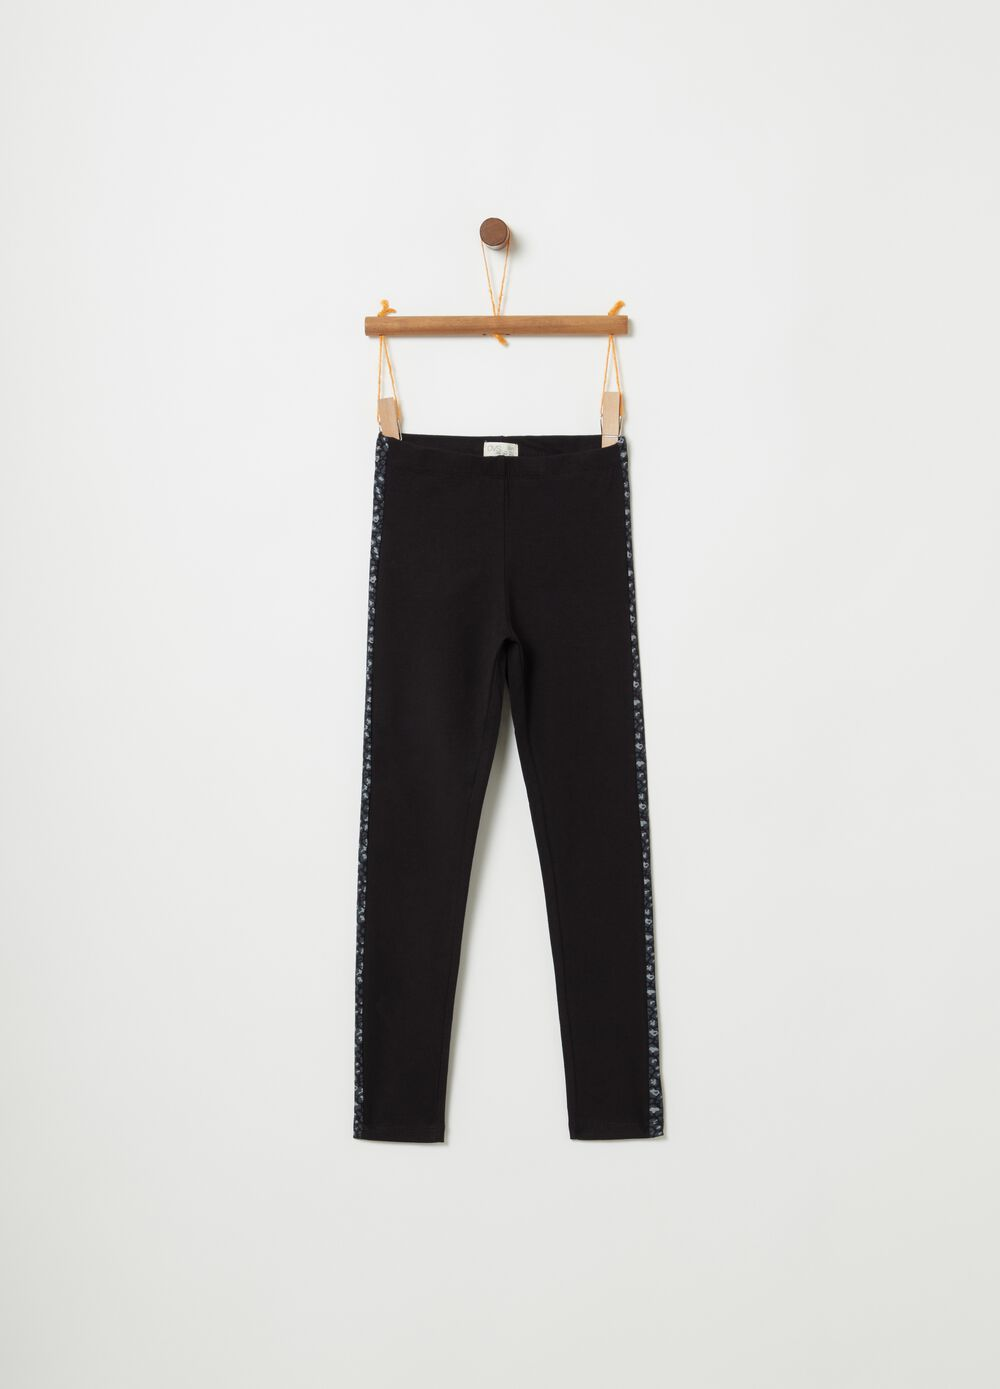 Stretch cotton leggings with animal print inserts